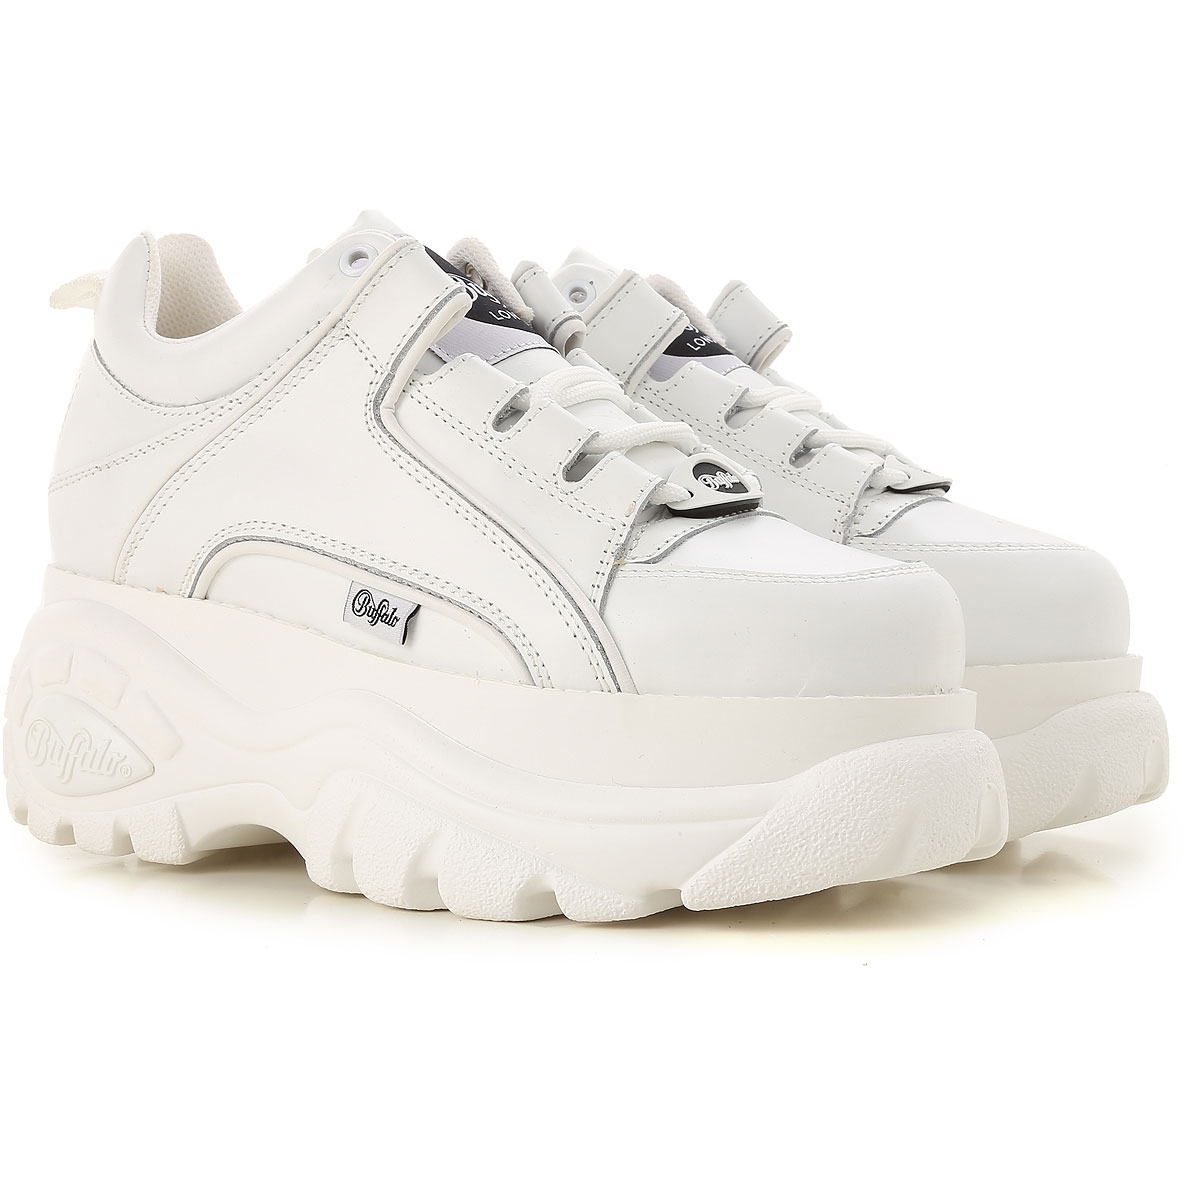 Image of Buffalo Sneakers for Women, White, Leather, 2017, 10 10.5 7 7.5 8 8 9 9